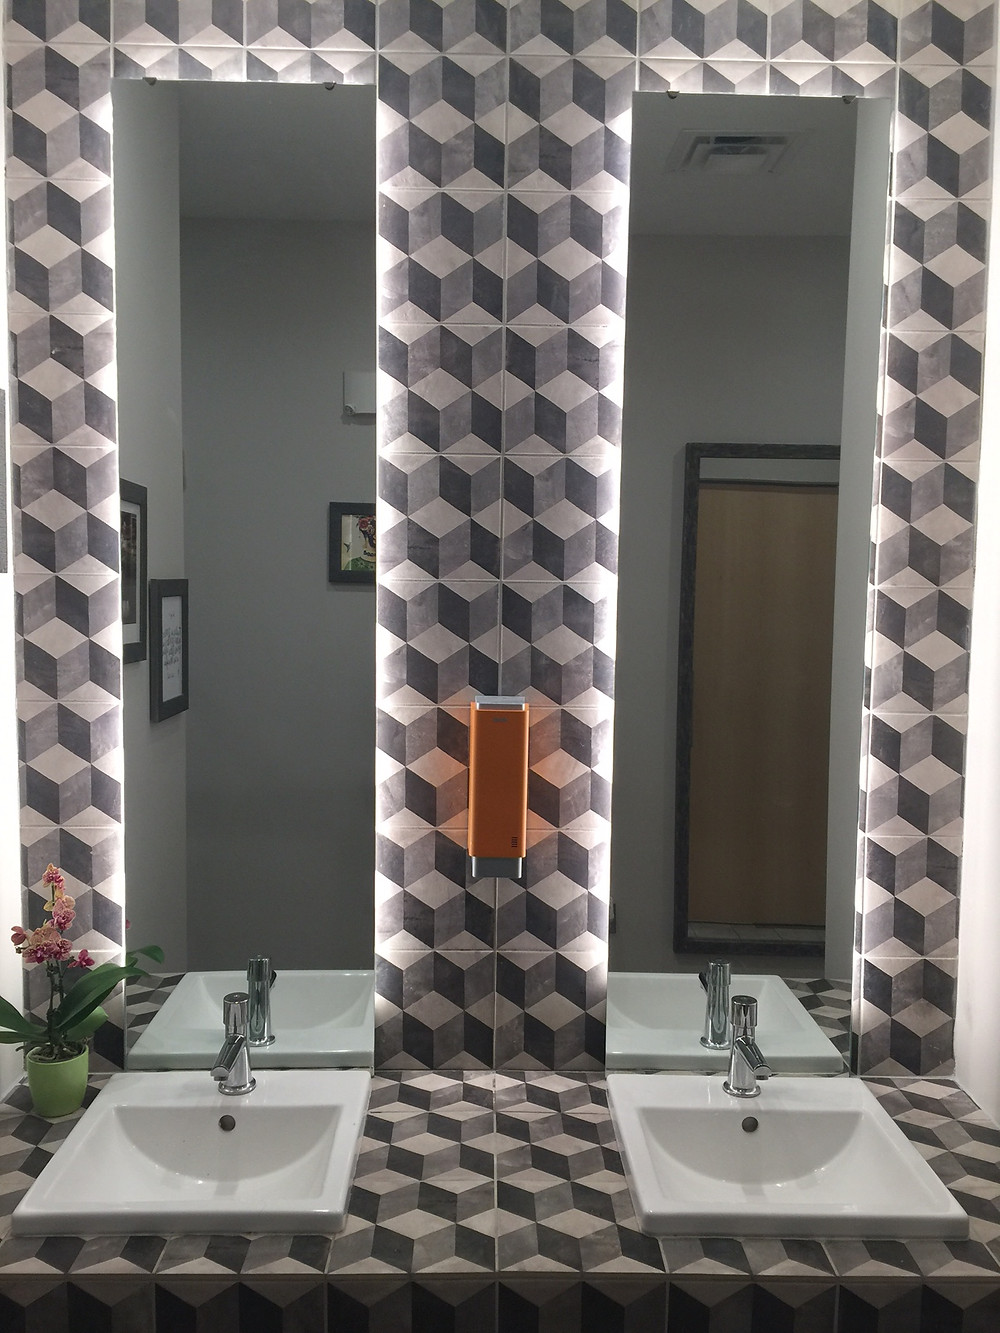 Tile is the New Wall Covering